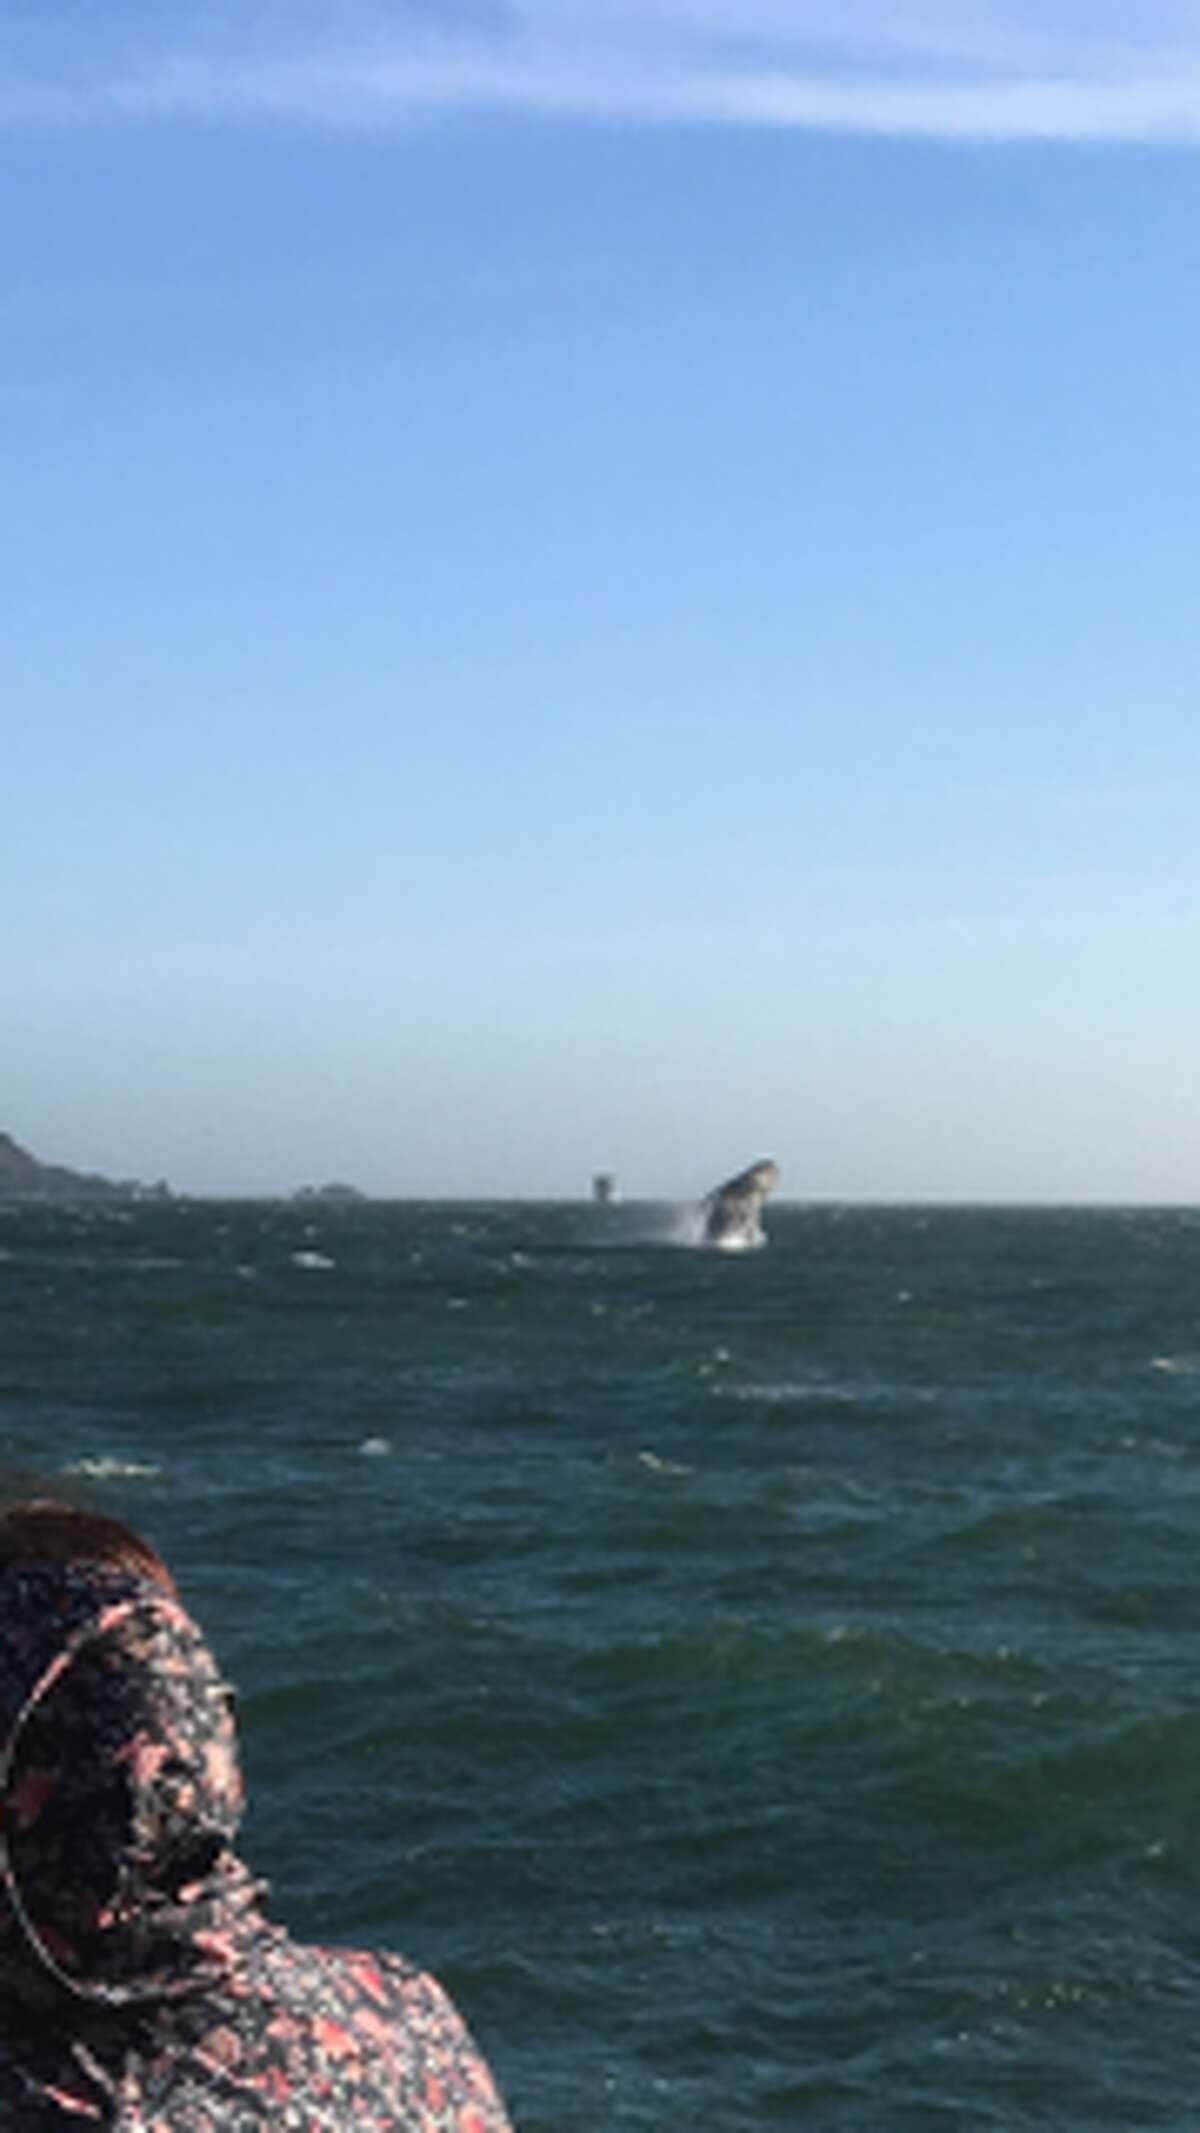 A San Francisco Whale Tours cruise spotted a humpback whale breaching on May 15, 2017, and posted this image on their Facebook page